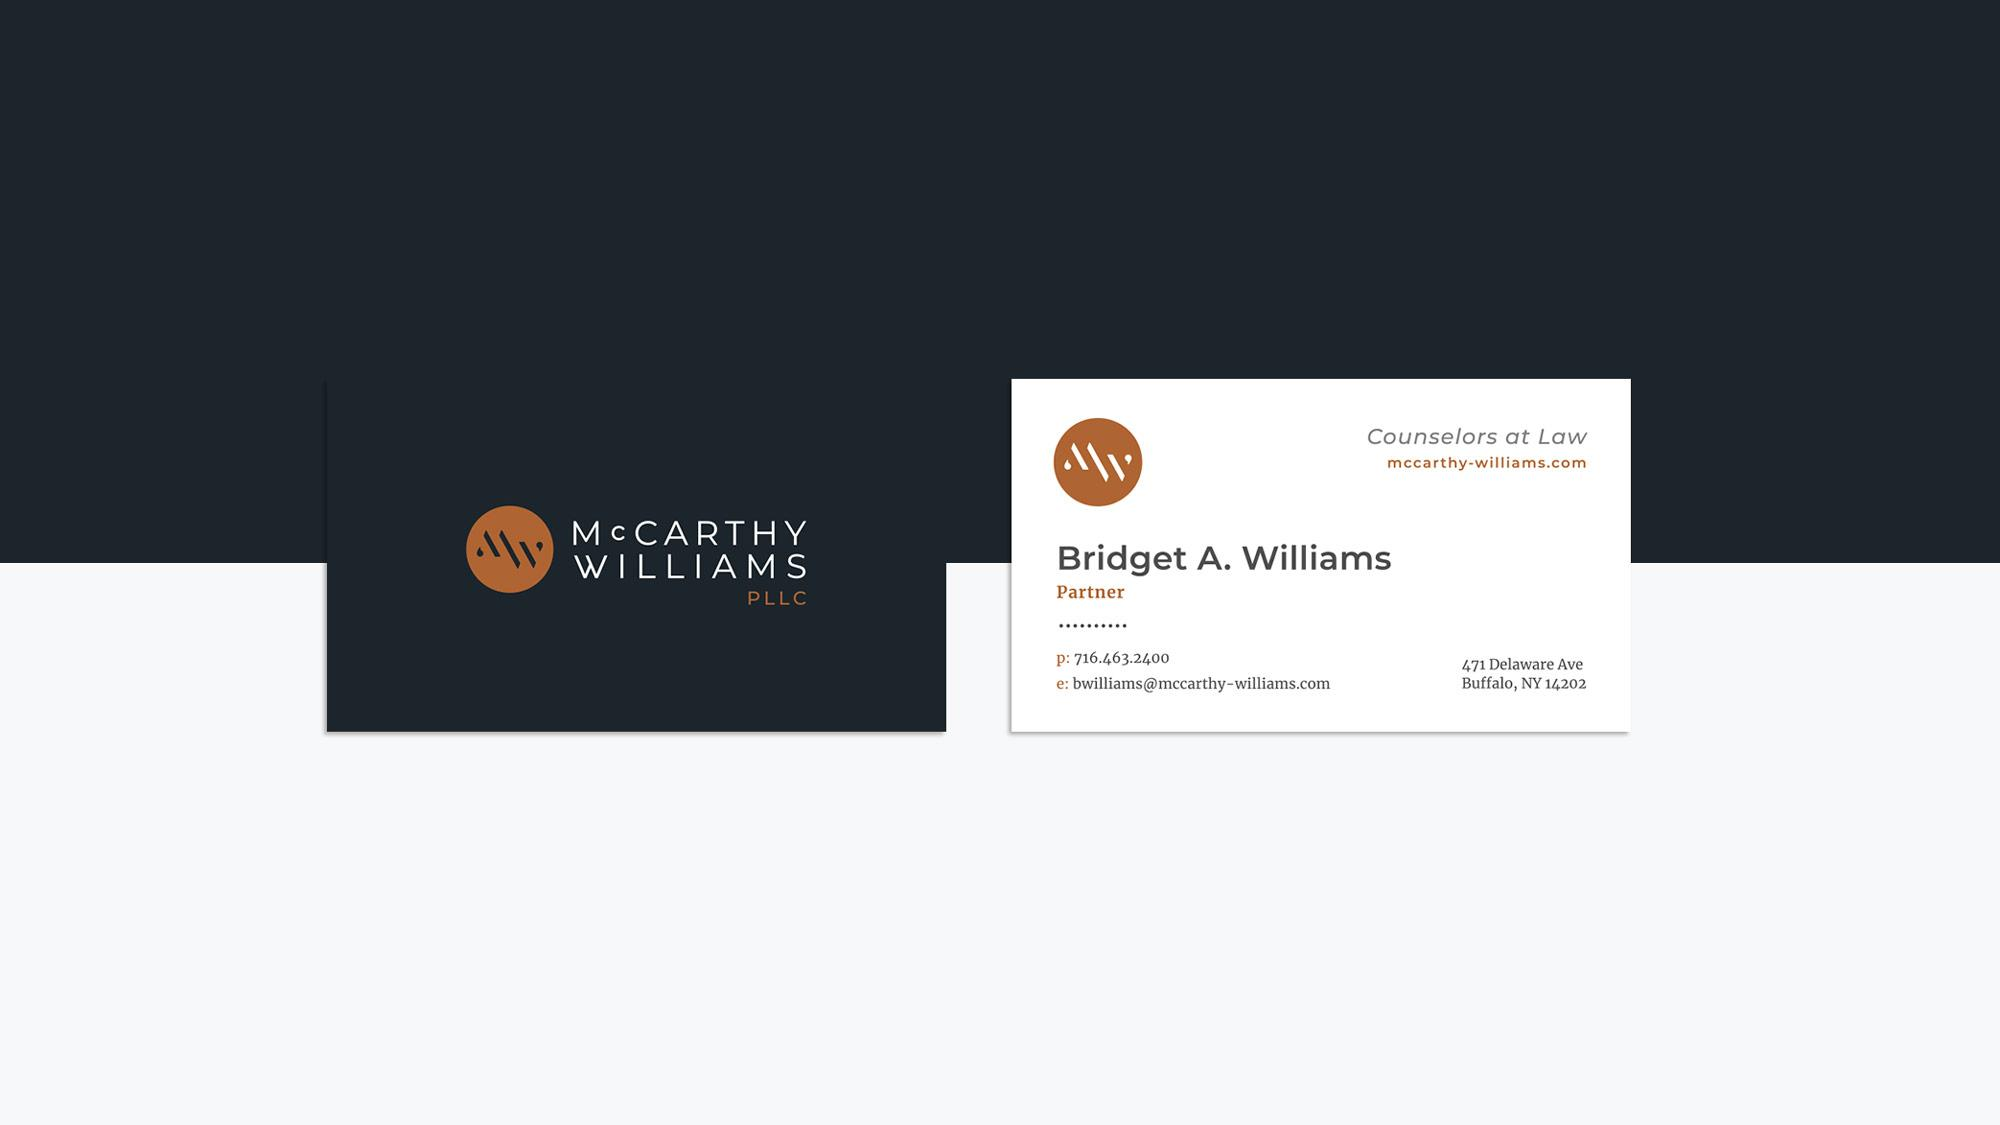 mccarthy-williams-business-card-mockup